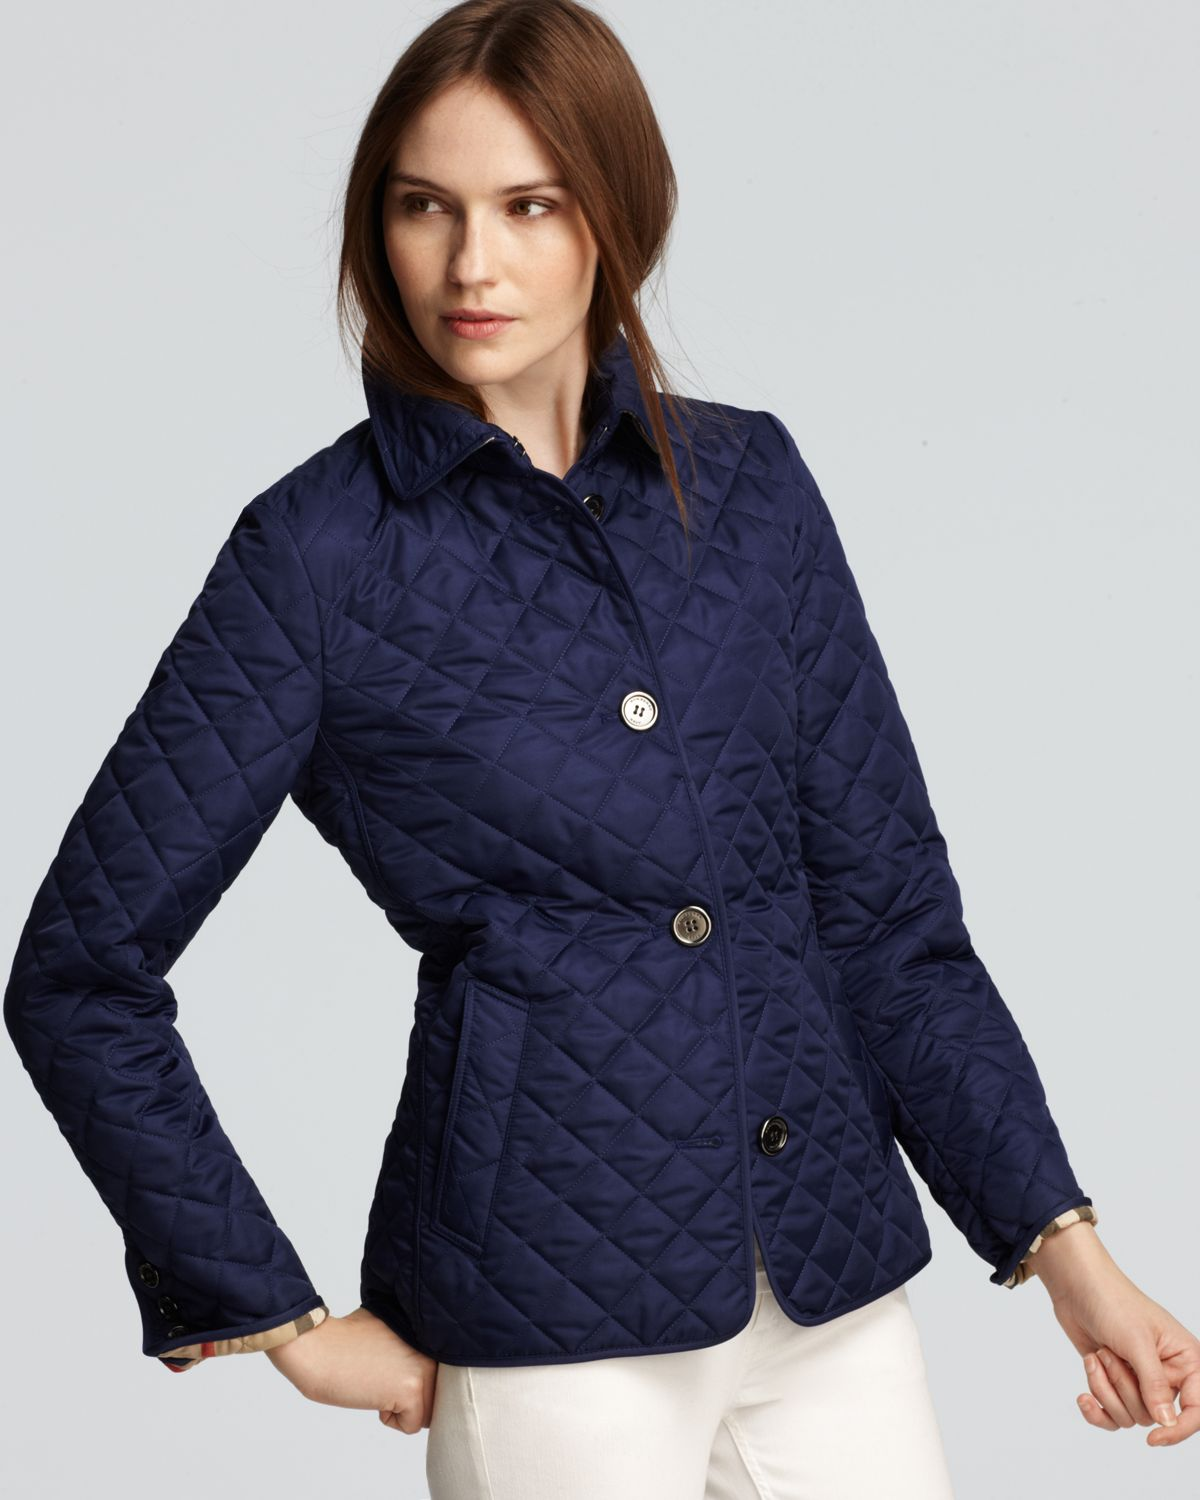 Find blue quilted jacket at ShopStyle. Shop the latest collection of blue quilted jacket from the most popular stores - all in one place.